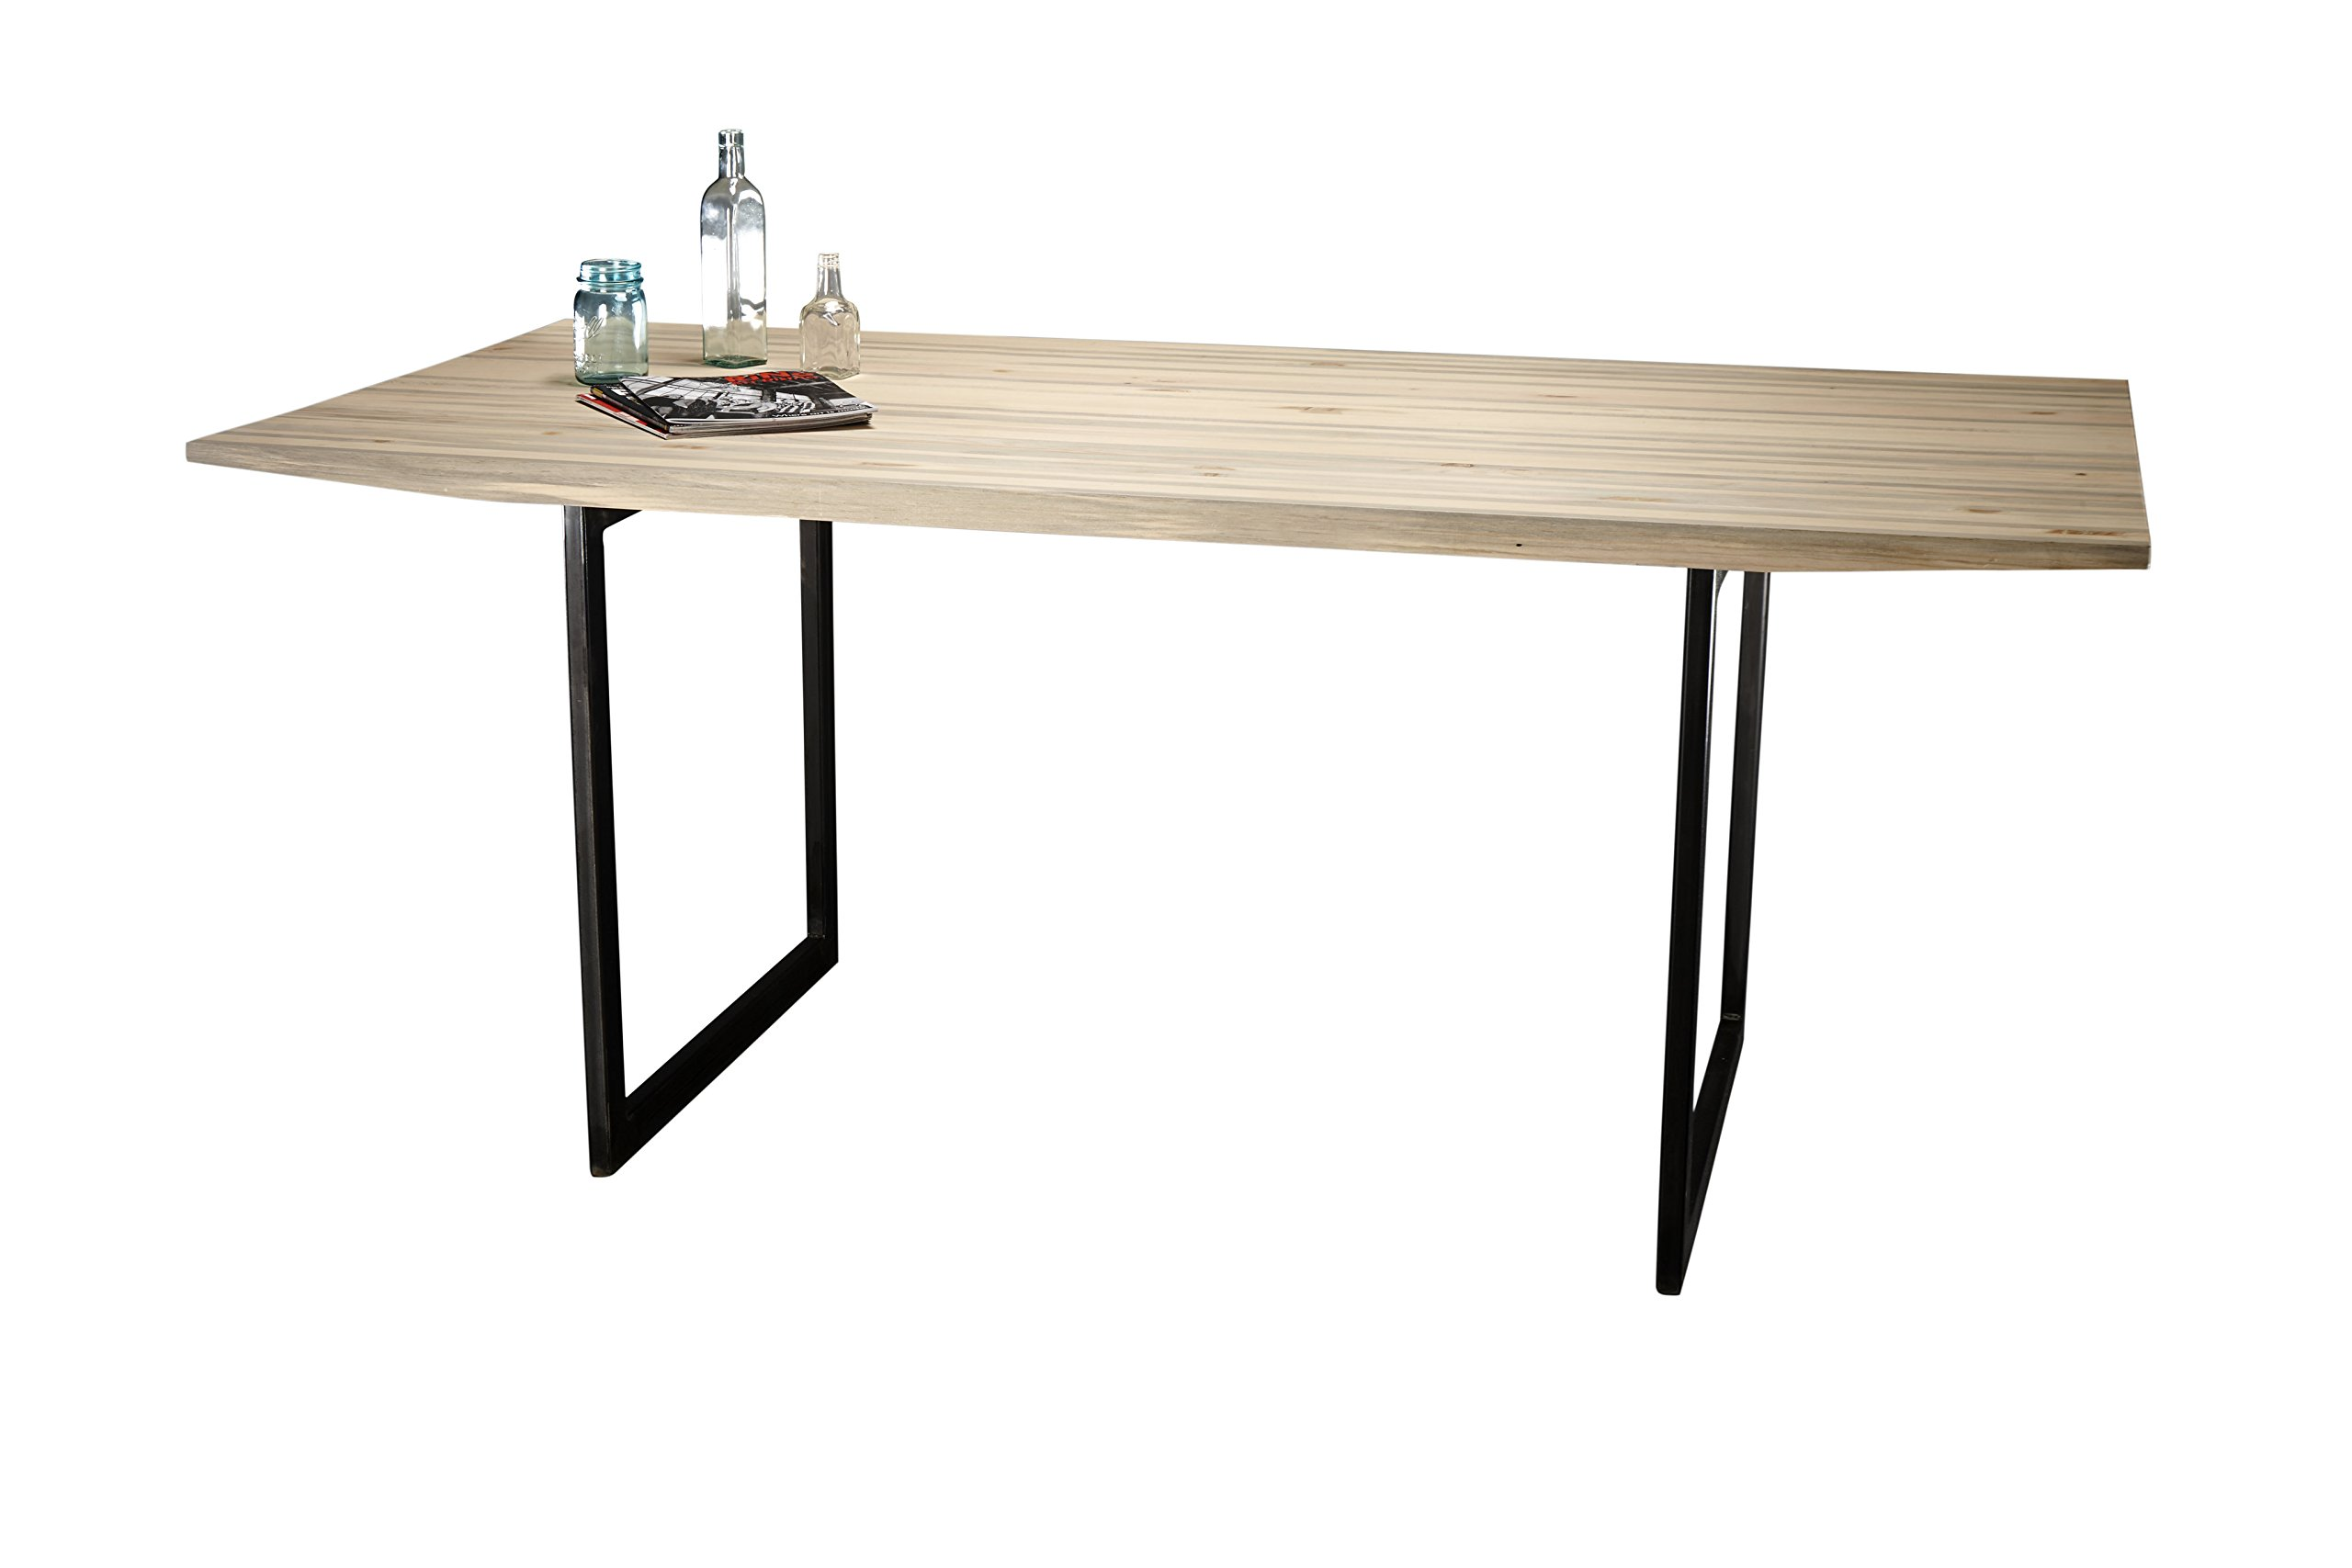 The Upslope, Dining table